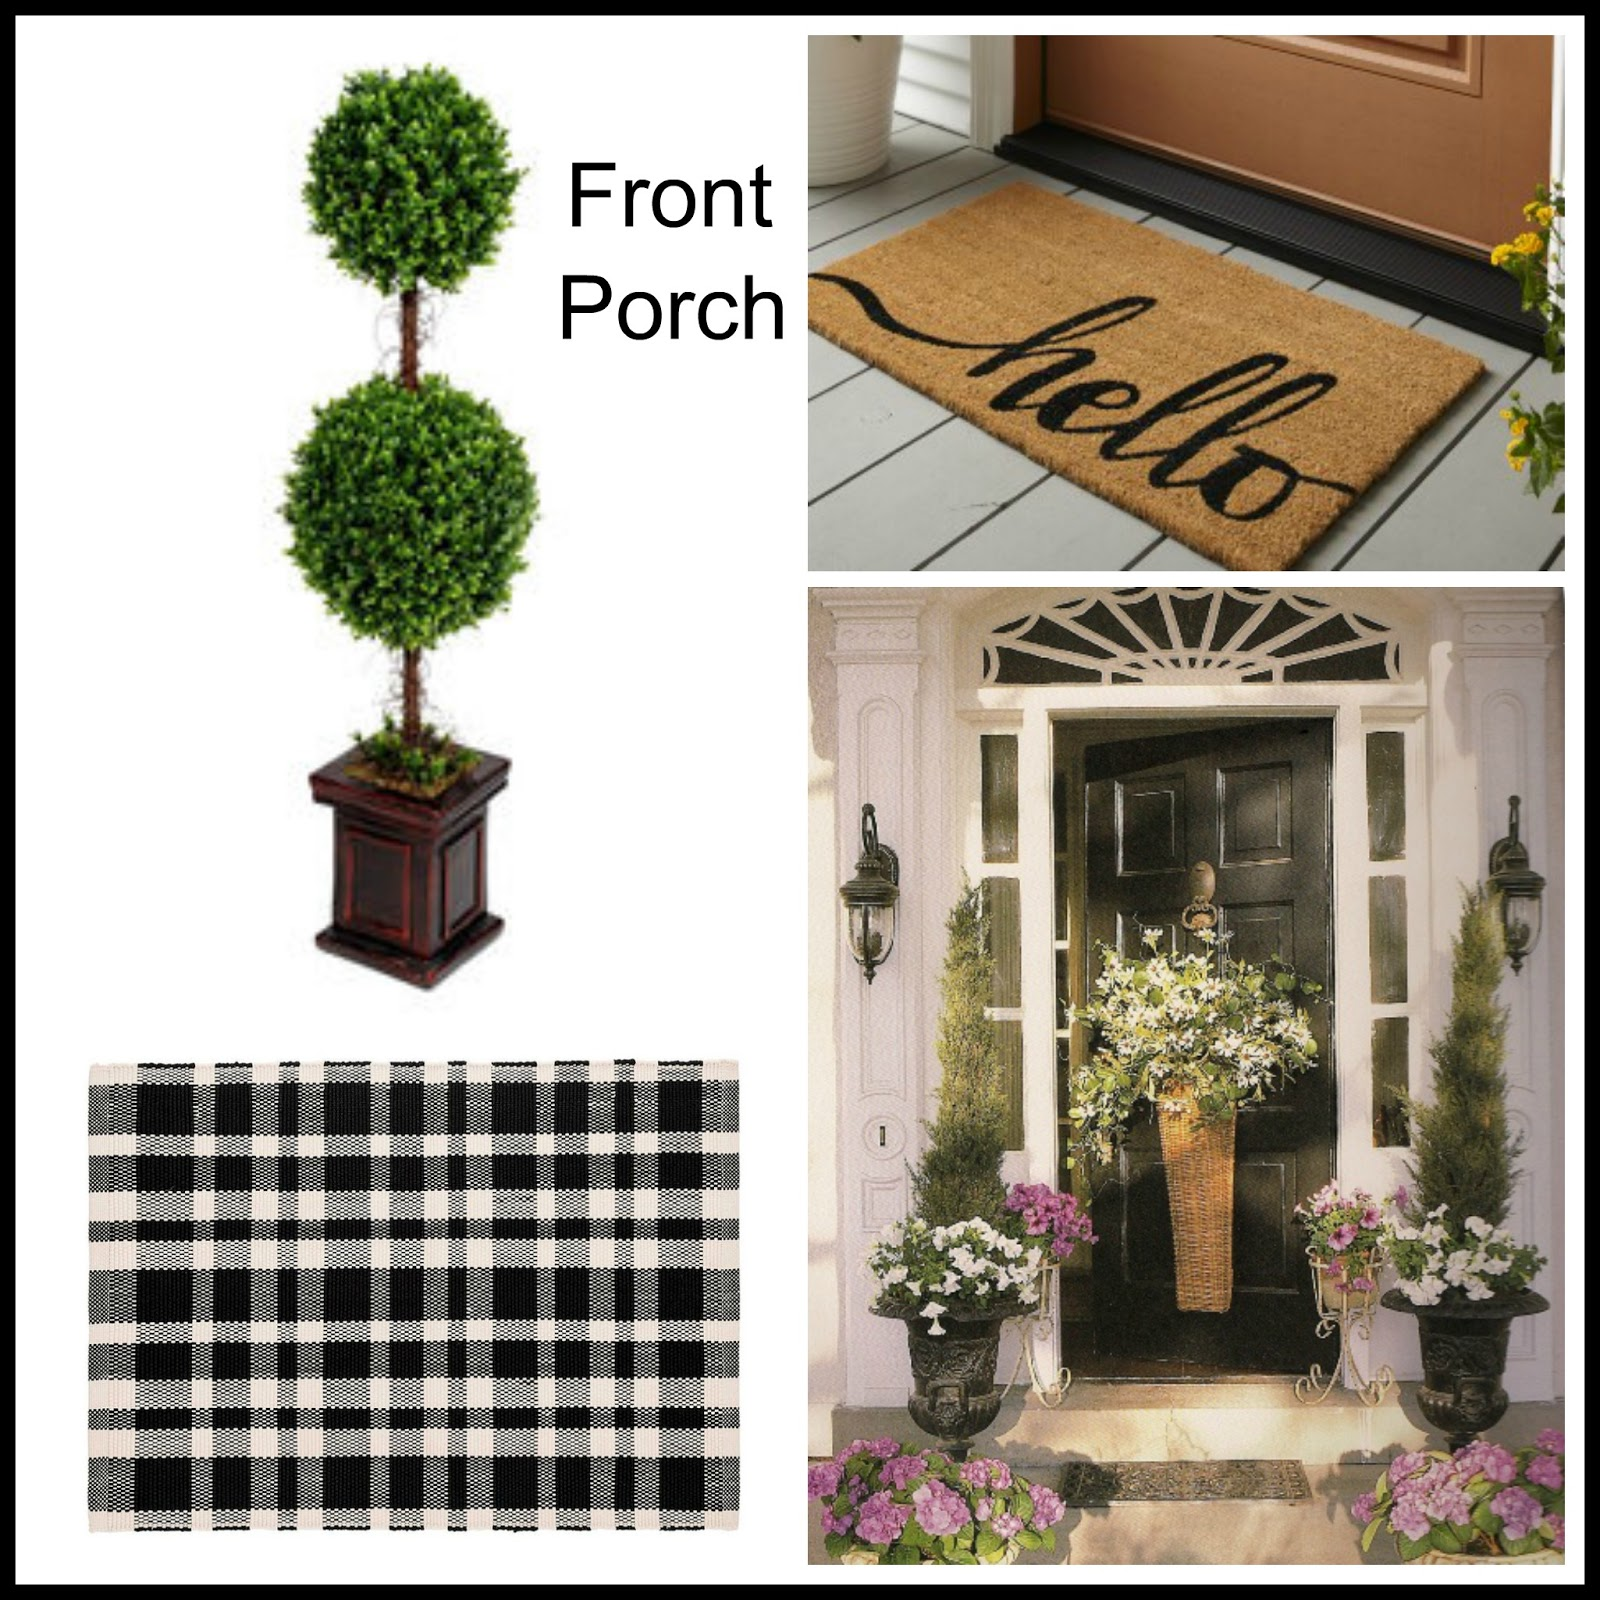 Porch Decor Ideas For A Small Stoop A Stroll Thru Life